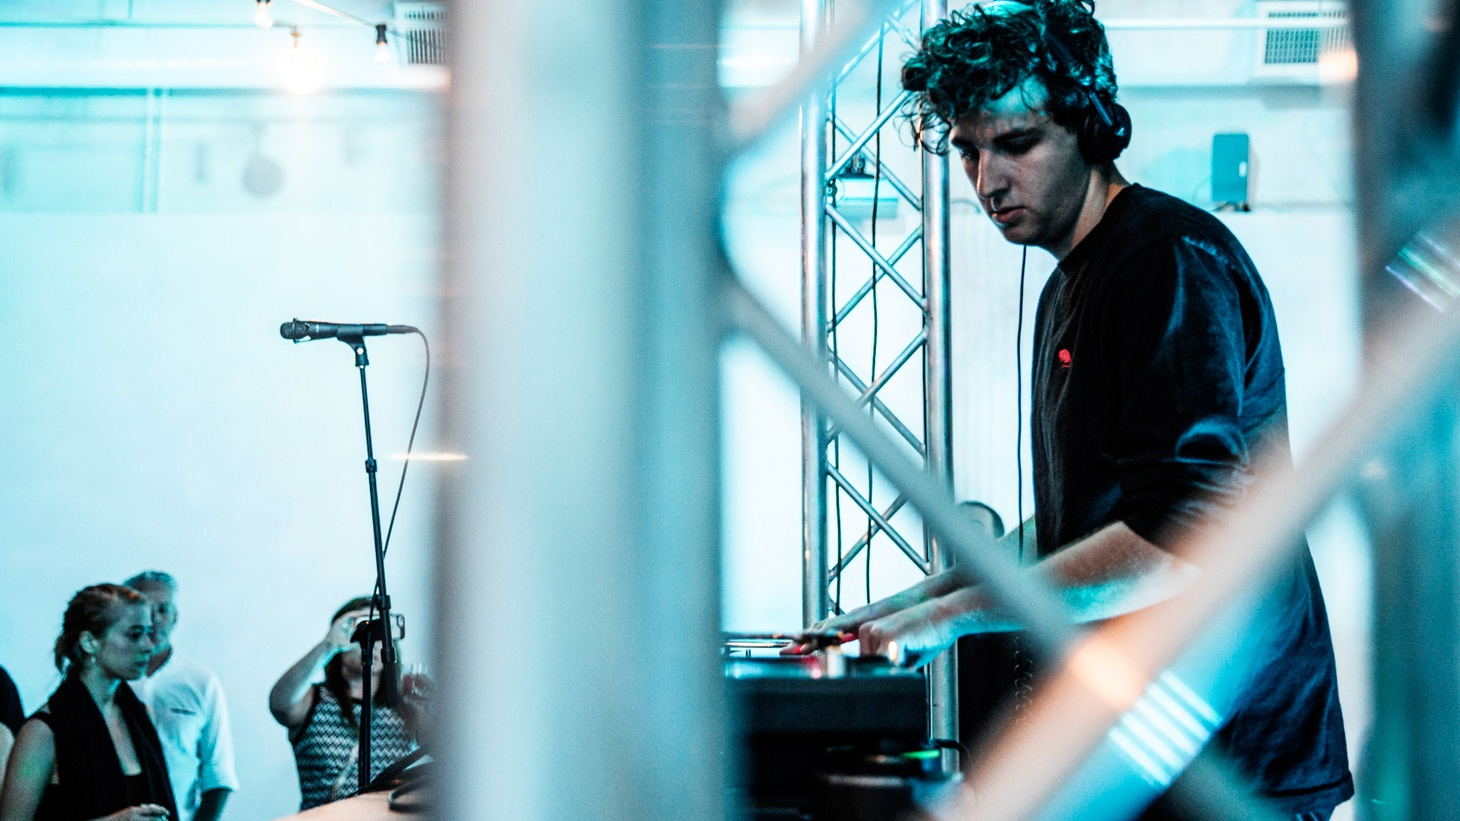 Producer Jamie xx burst onto the music scene as part of the highly successful group The xx and finally released his solo debut earlier this year. It's a dazzling collection of songs and is among the most played albums of the year at KCRW.